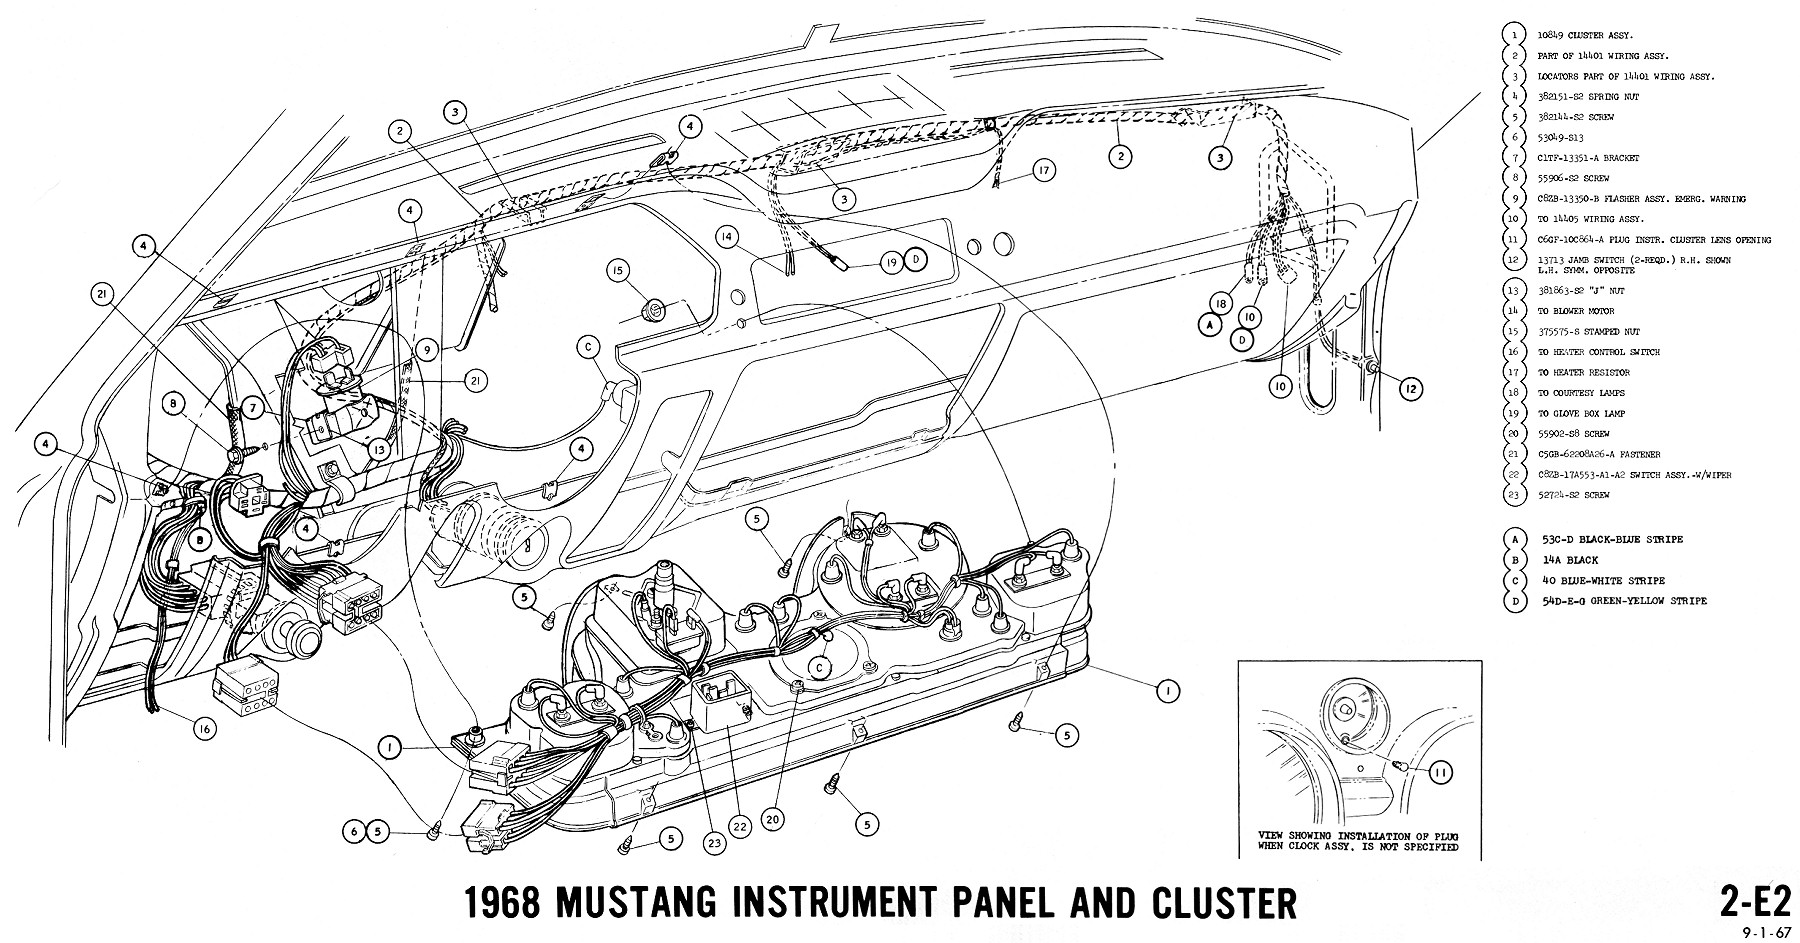 1968 mustang wiring diagram instruments 2 wiring diagram for 2002 dodge durango blower resistor wiring library